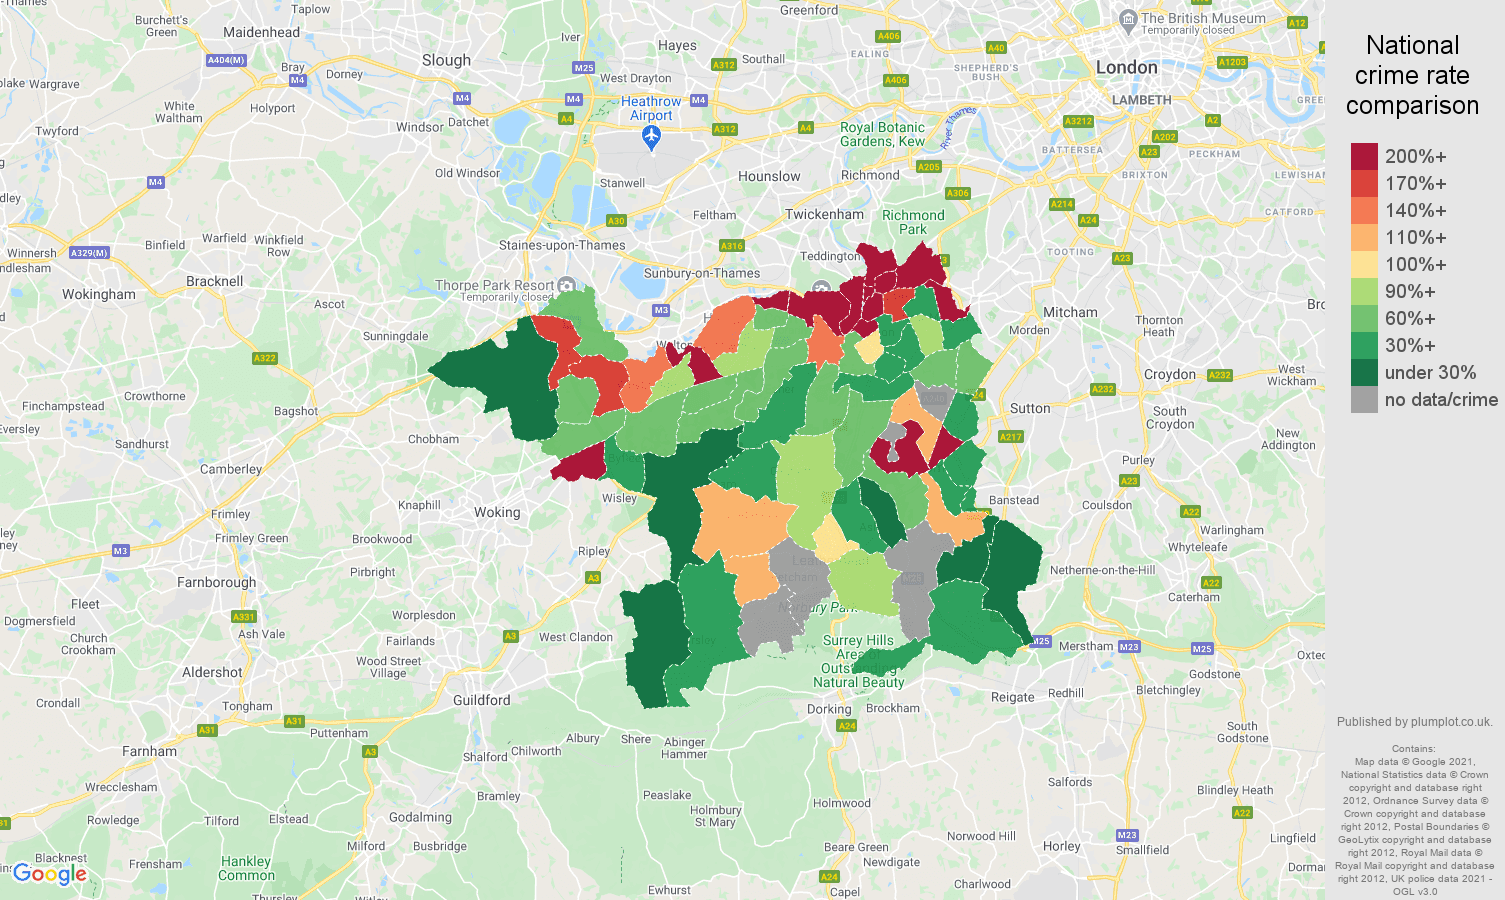 Kingston upon Thames bicycle theft crime rate comparison map